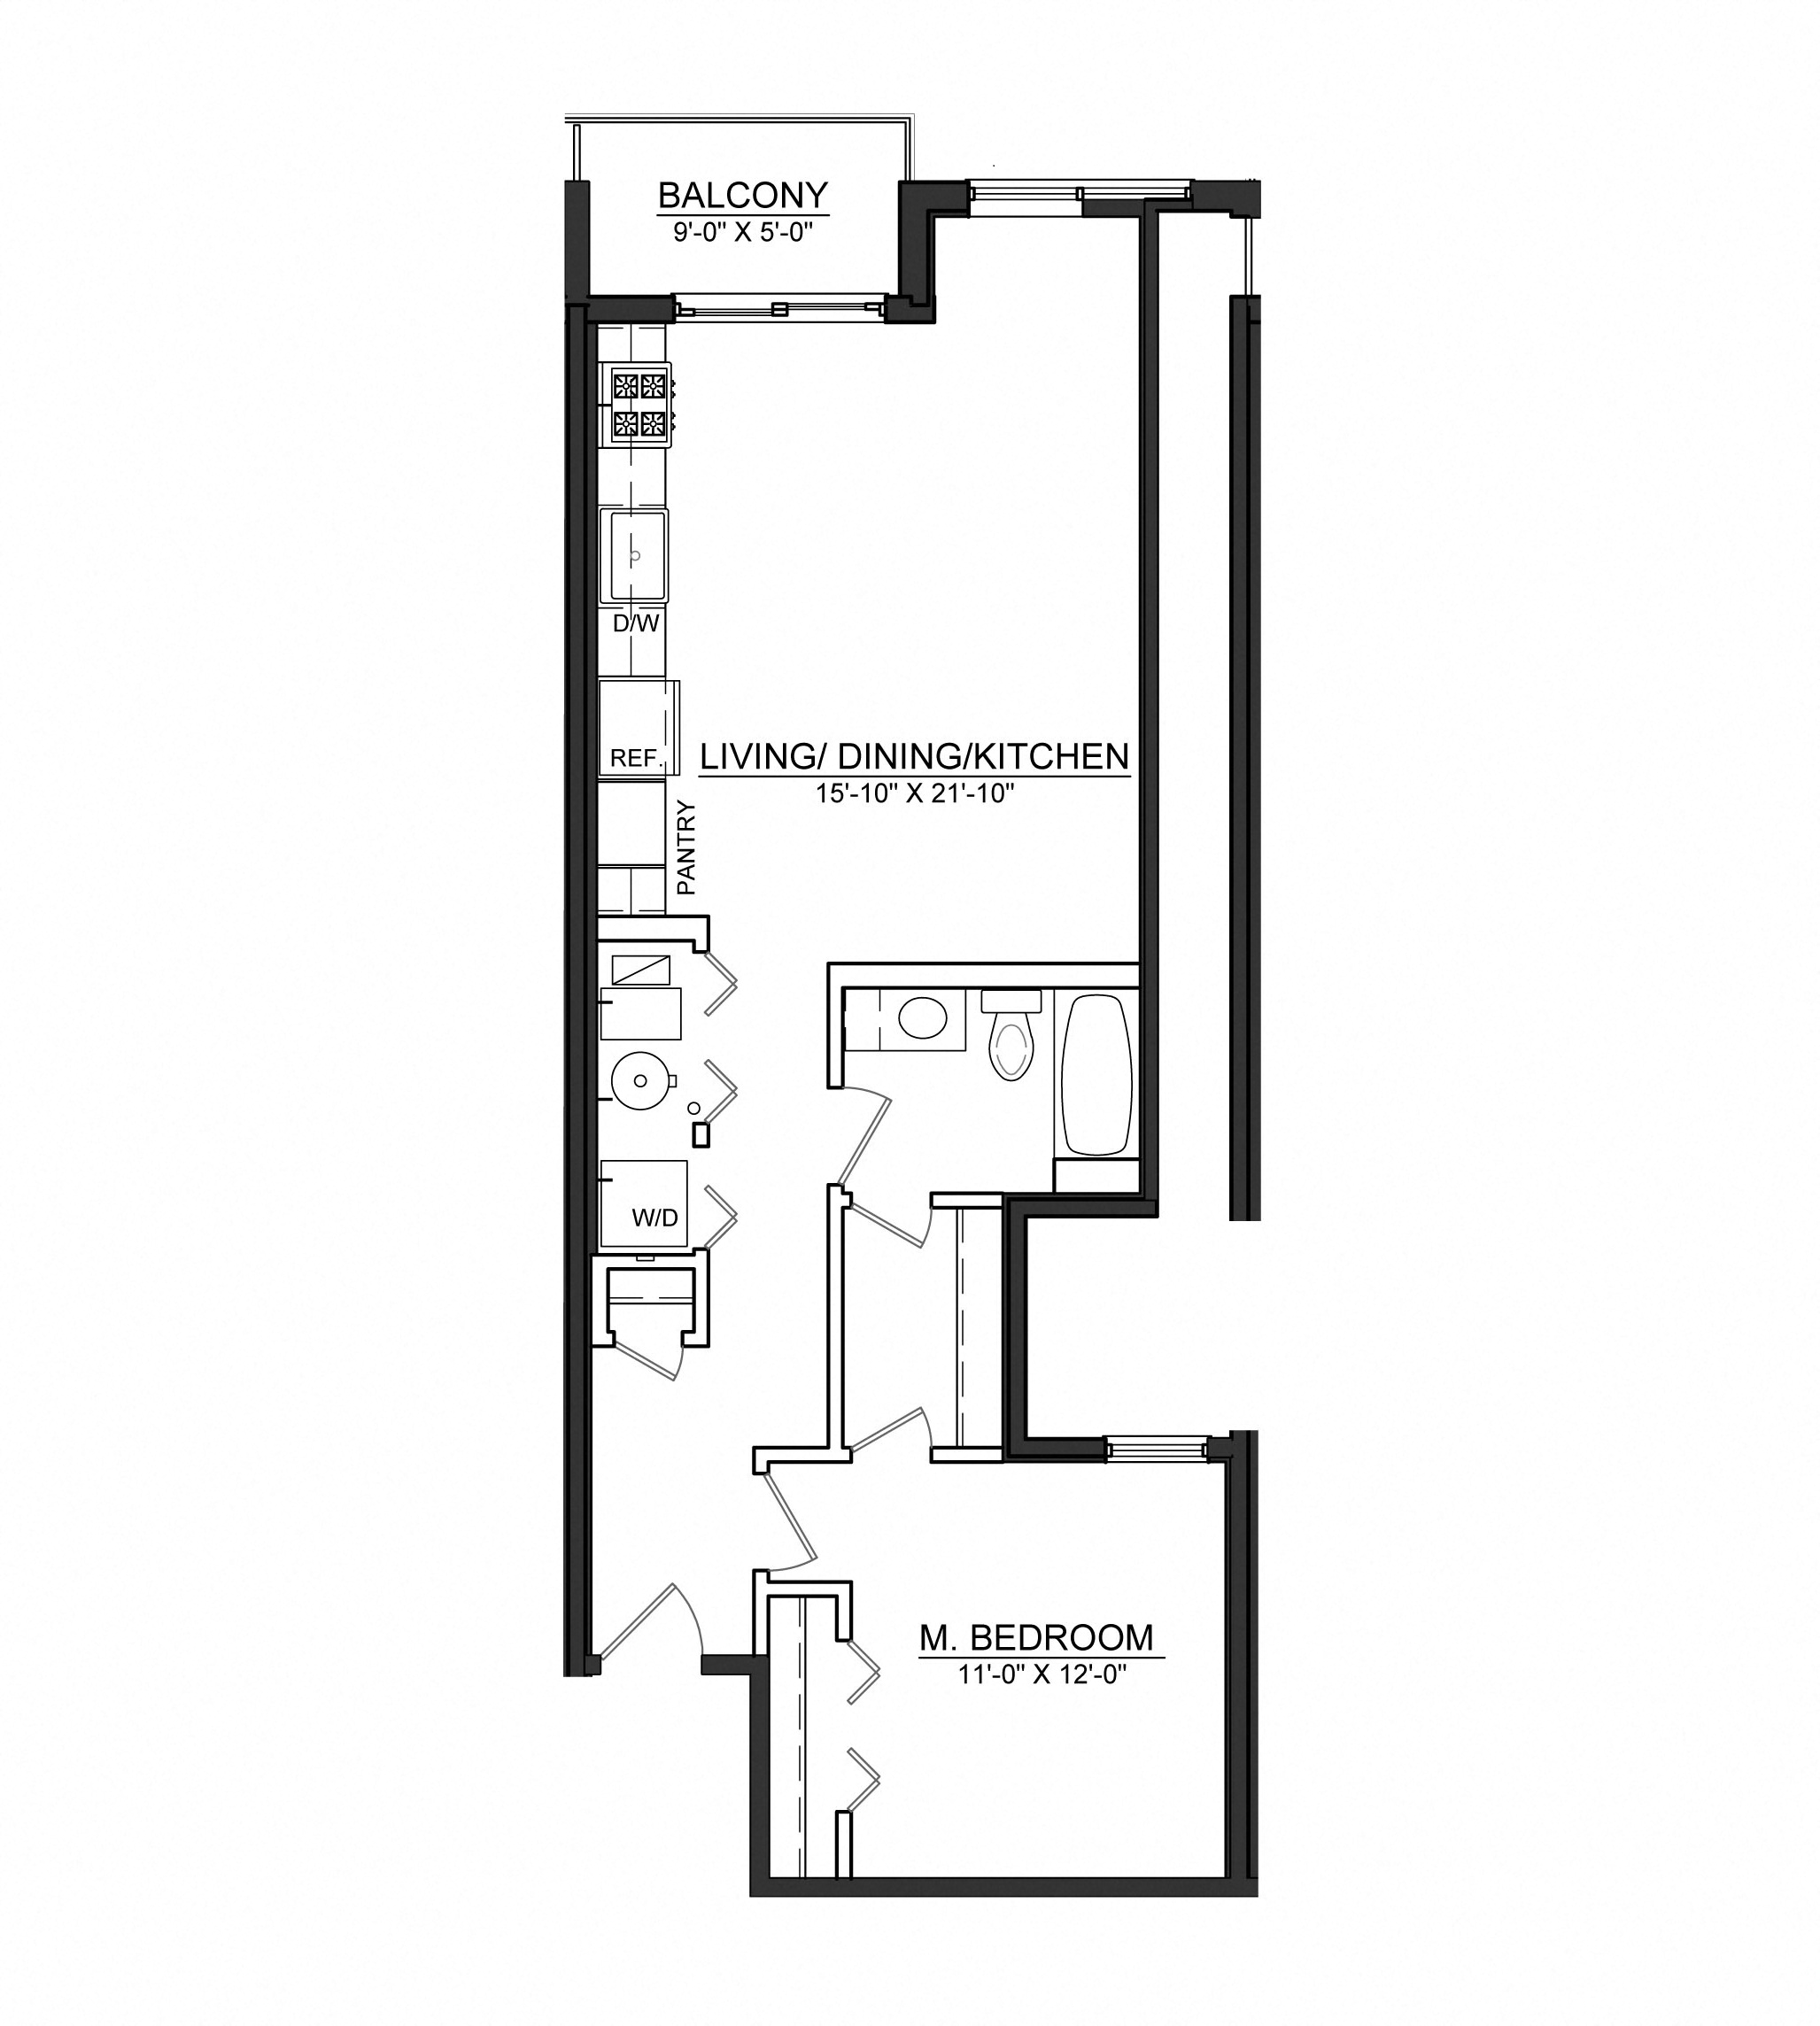 Floor Plans Of Wells Place Apartments In Chicago Il